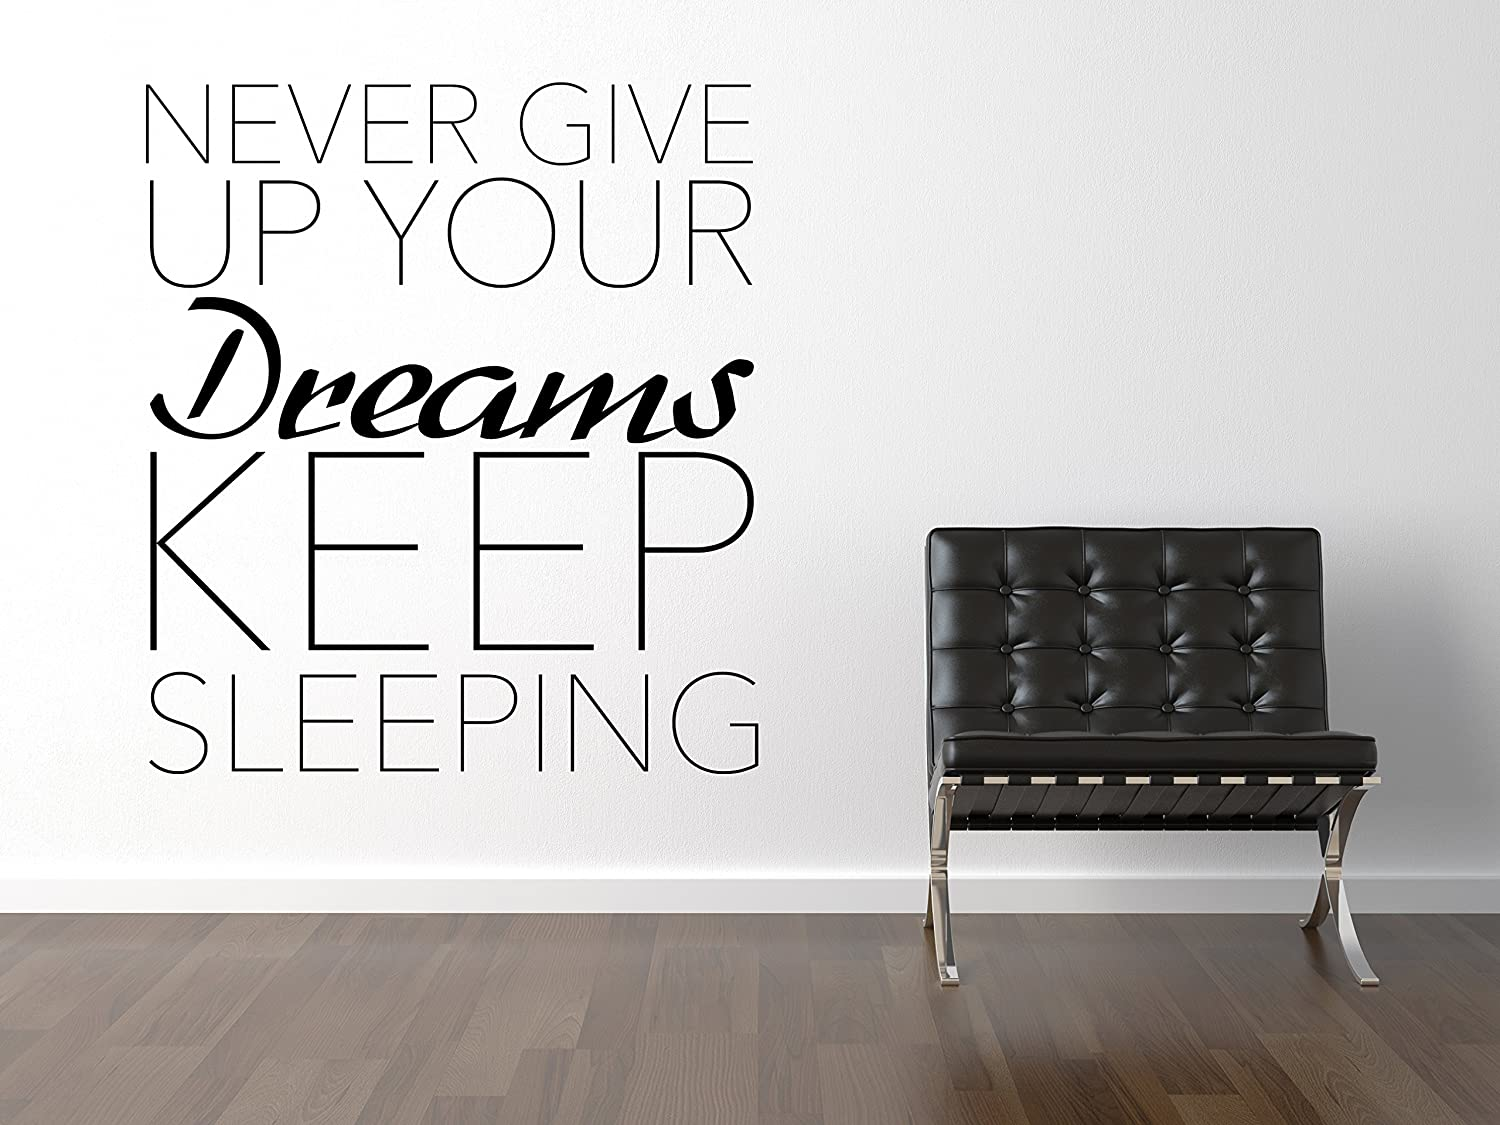 Never Give Up Your Dreams de pared De colour negro Certified Freak ...